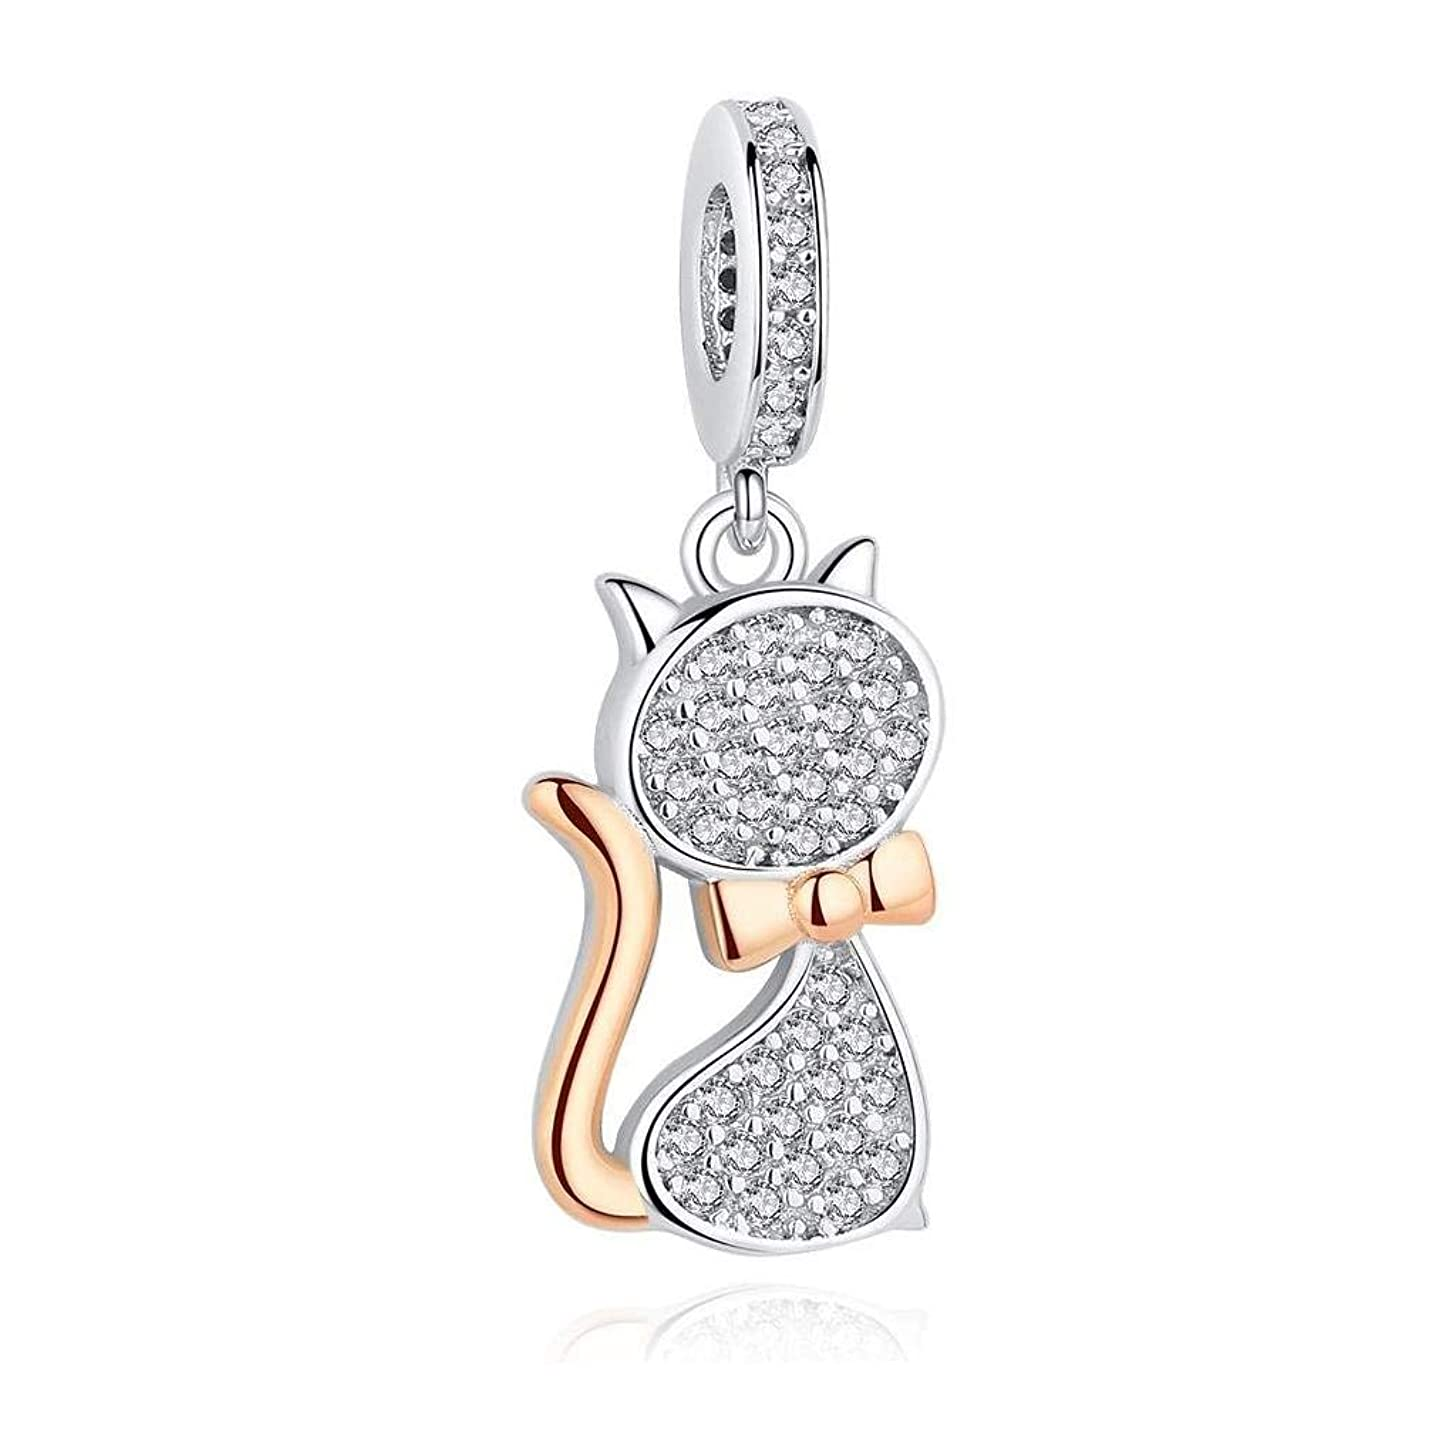 MIADEAL Cat Charm, Sterling Silver, Pandora Compatible Hanging Pendant Charm